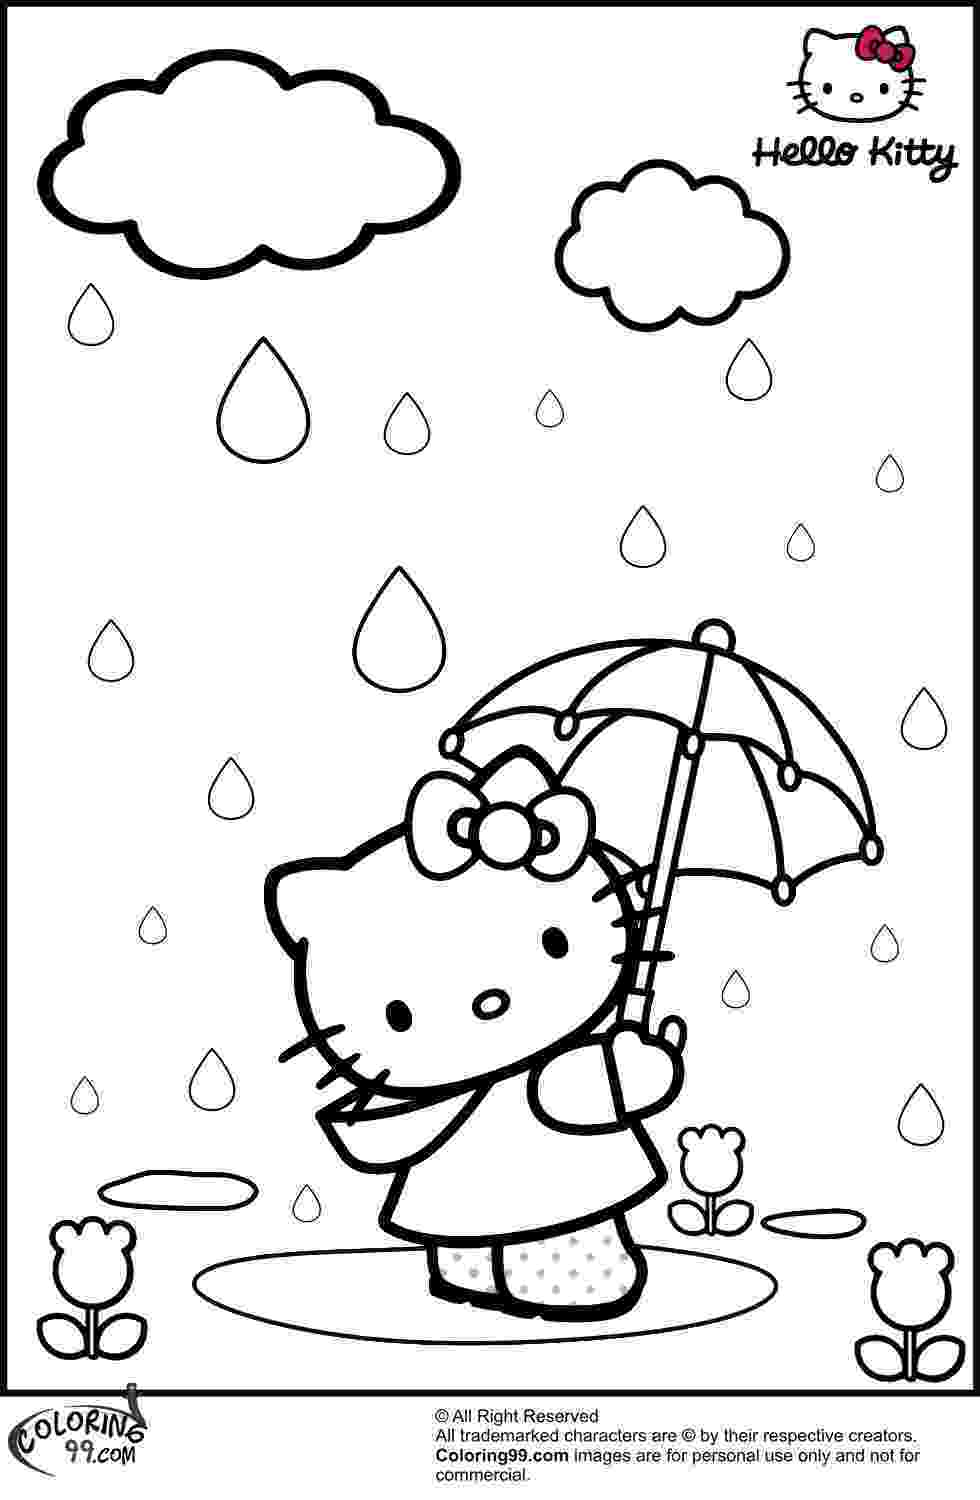 hello kitty coloring pages free hello kitty coloring pages free hello free pages kitty coloring